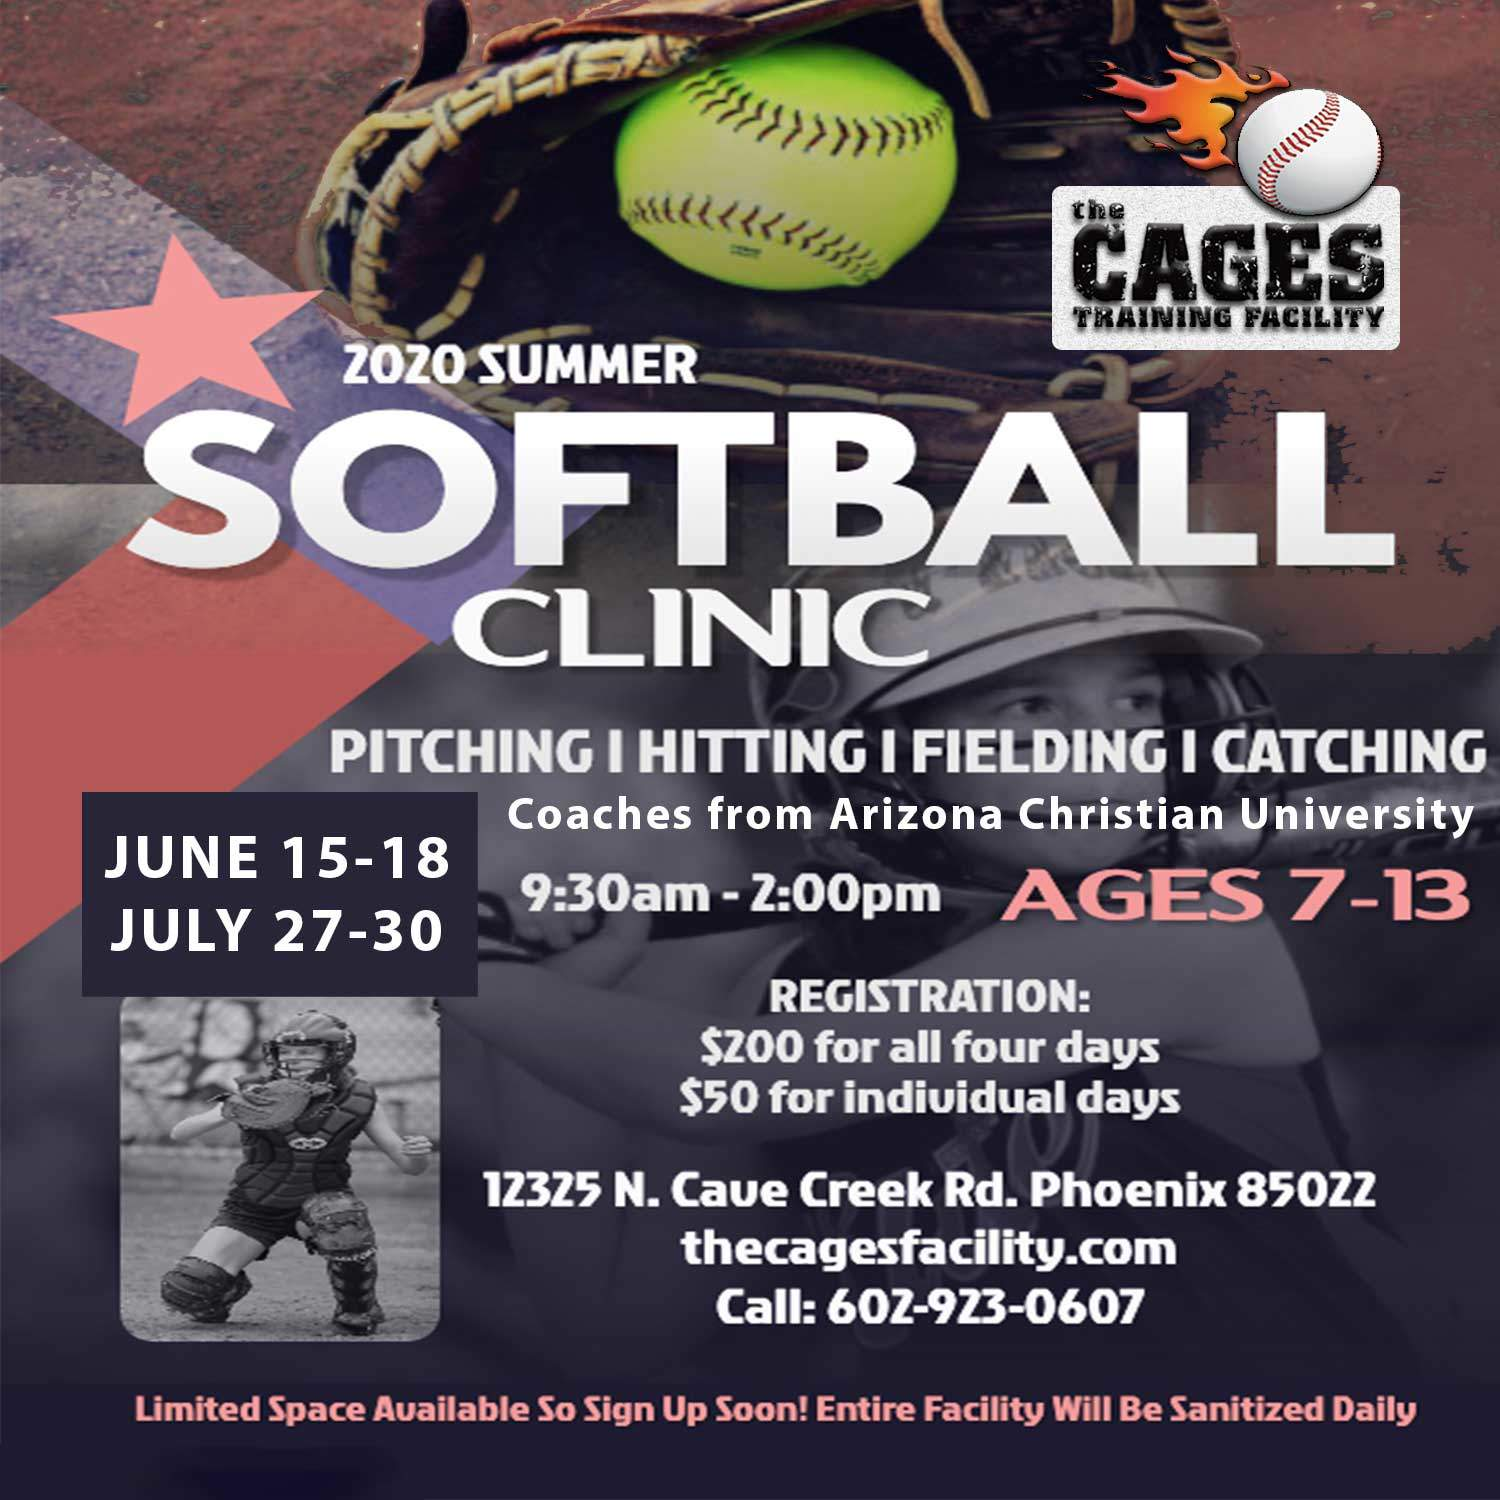 Summer Softball Camp The Cages Phoenix AZ